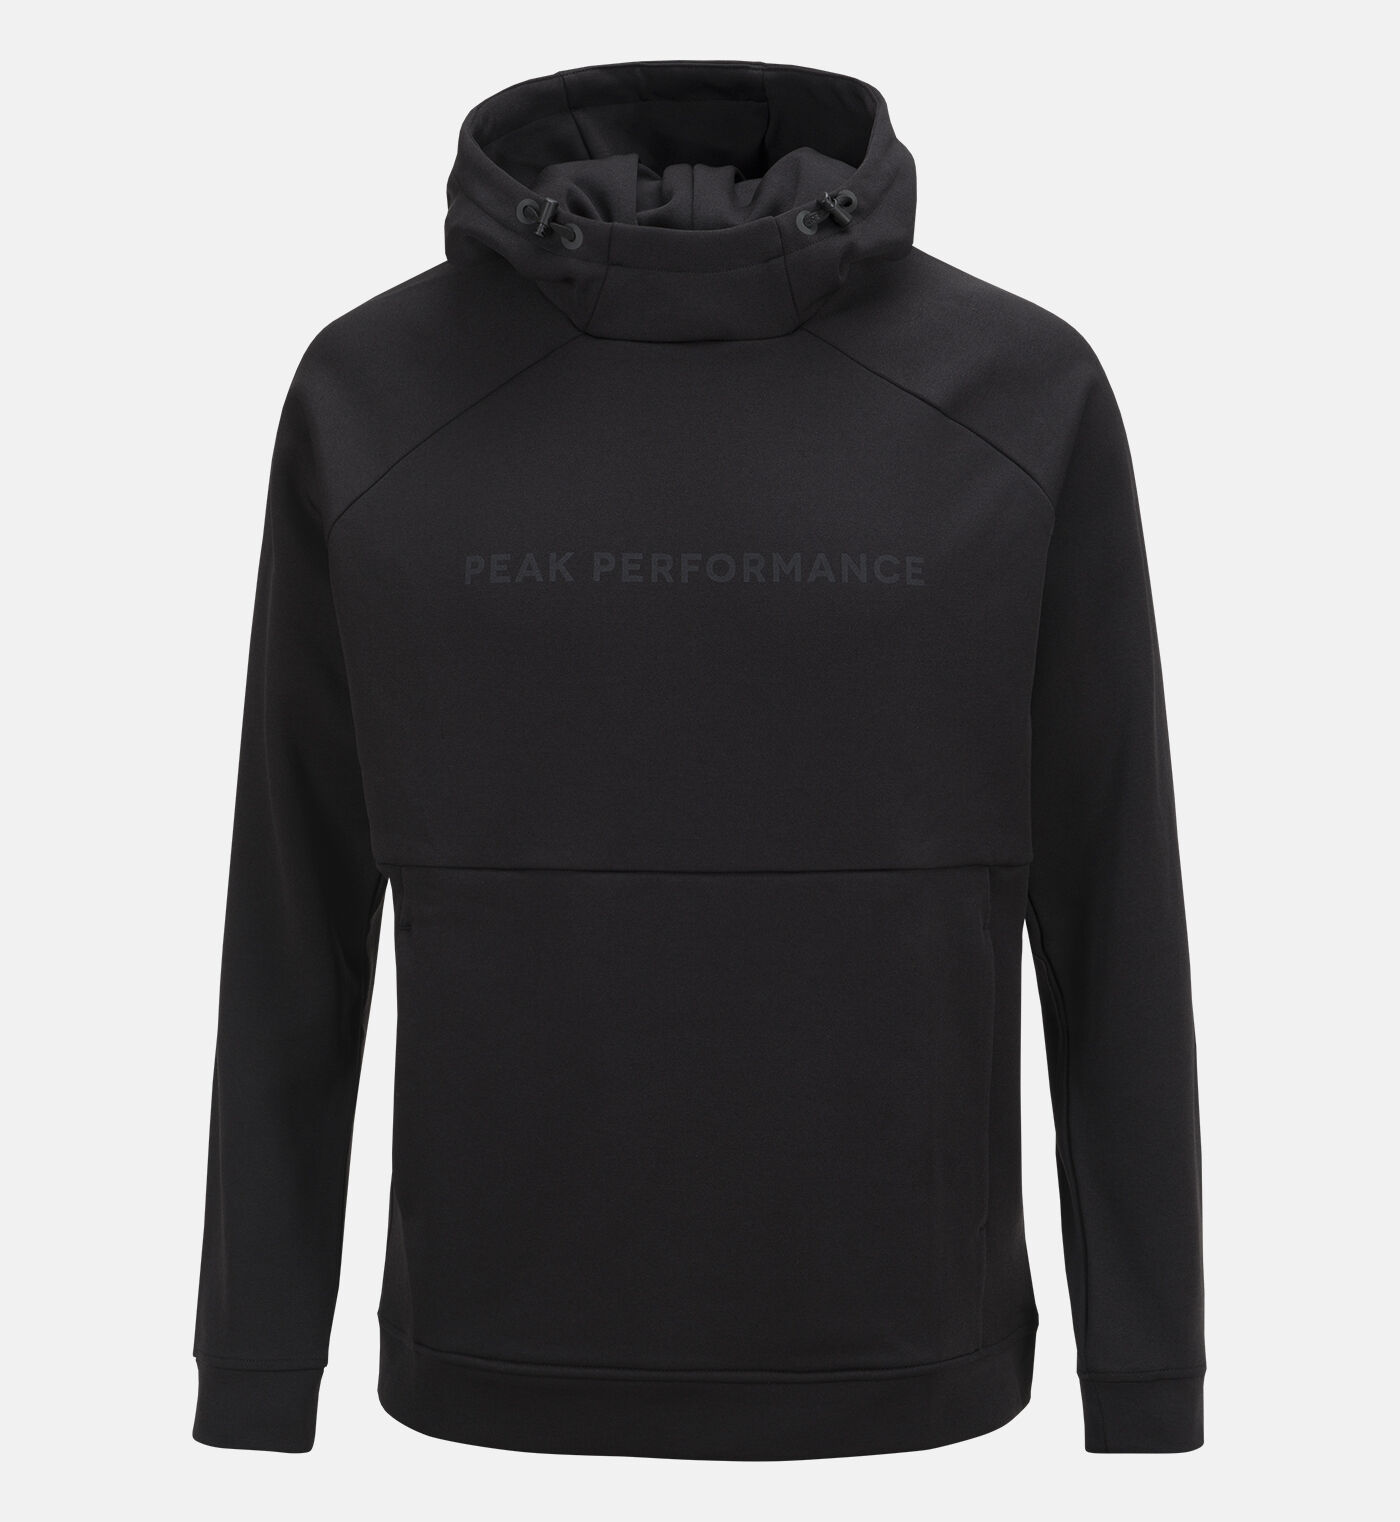 Peak Performance Pulse con capucha Hoodie herbstiwinter 2017 2018 en negro